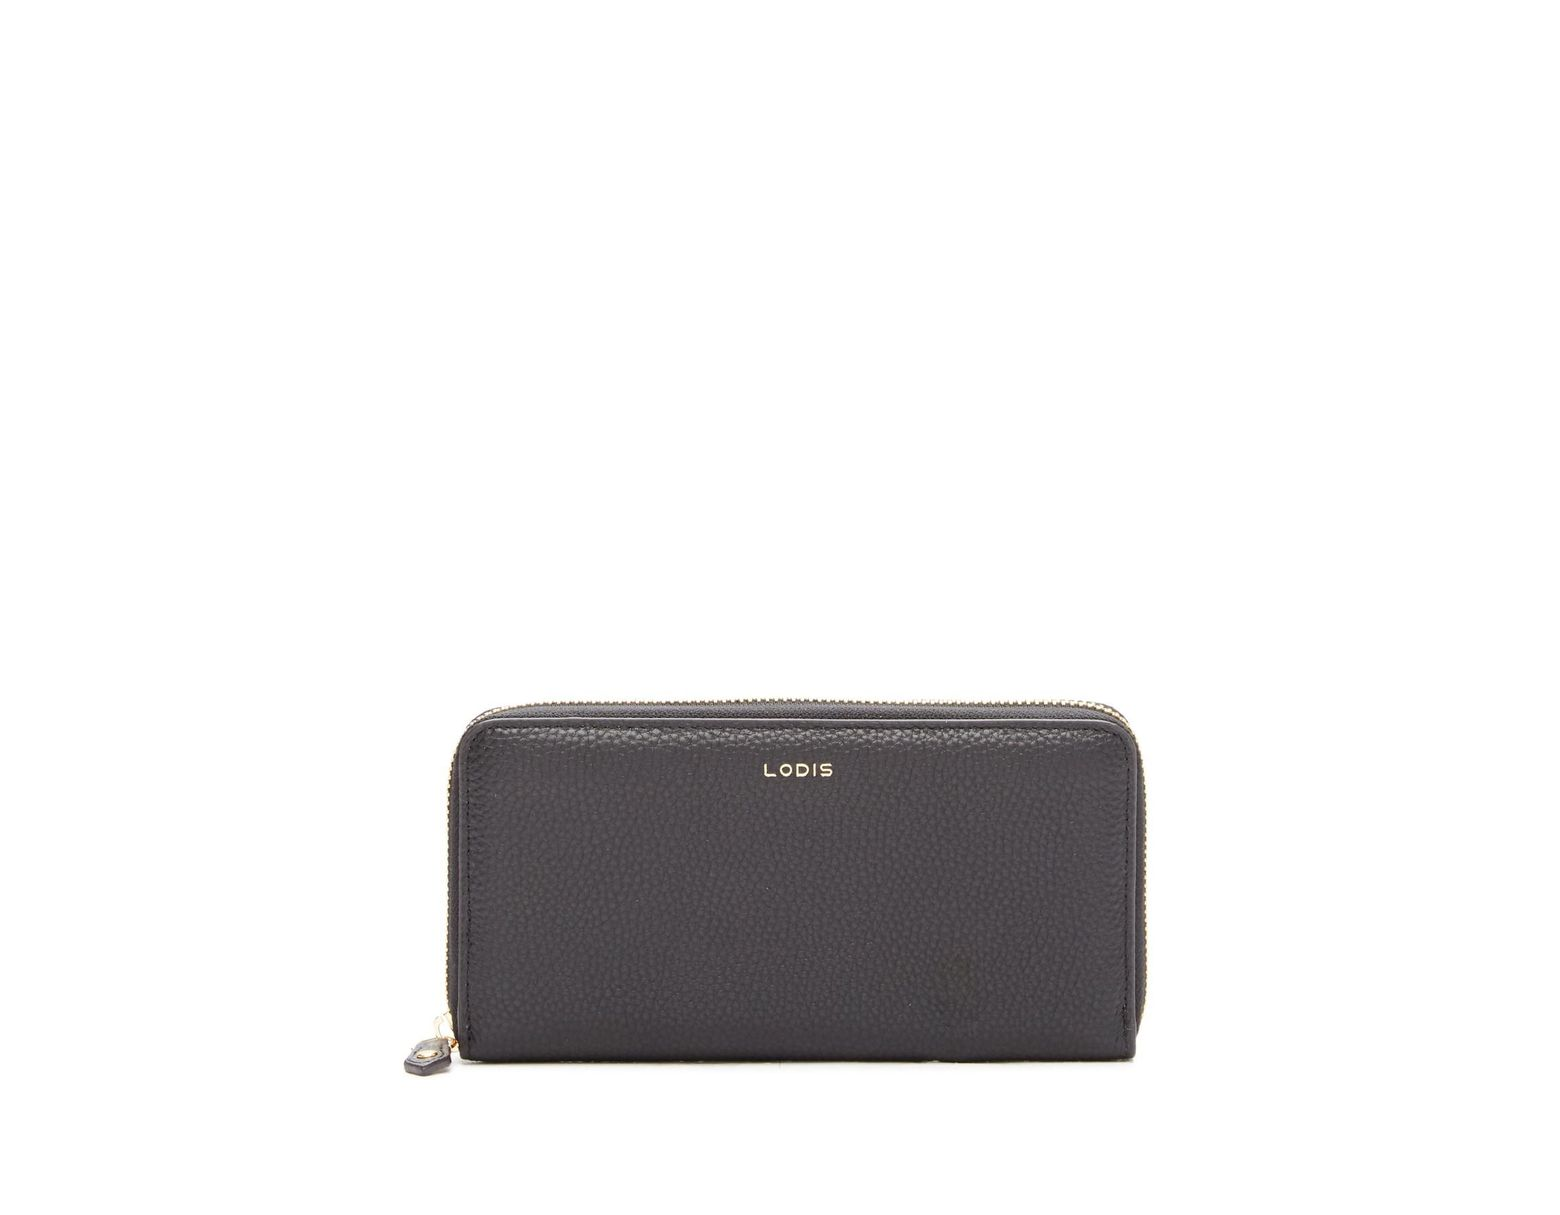 4d5f85001d Lodis Colleen Zip-around Leather Wallet in Black - Lyst